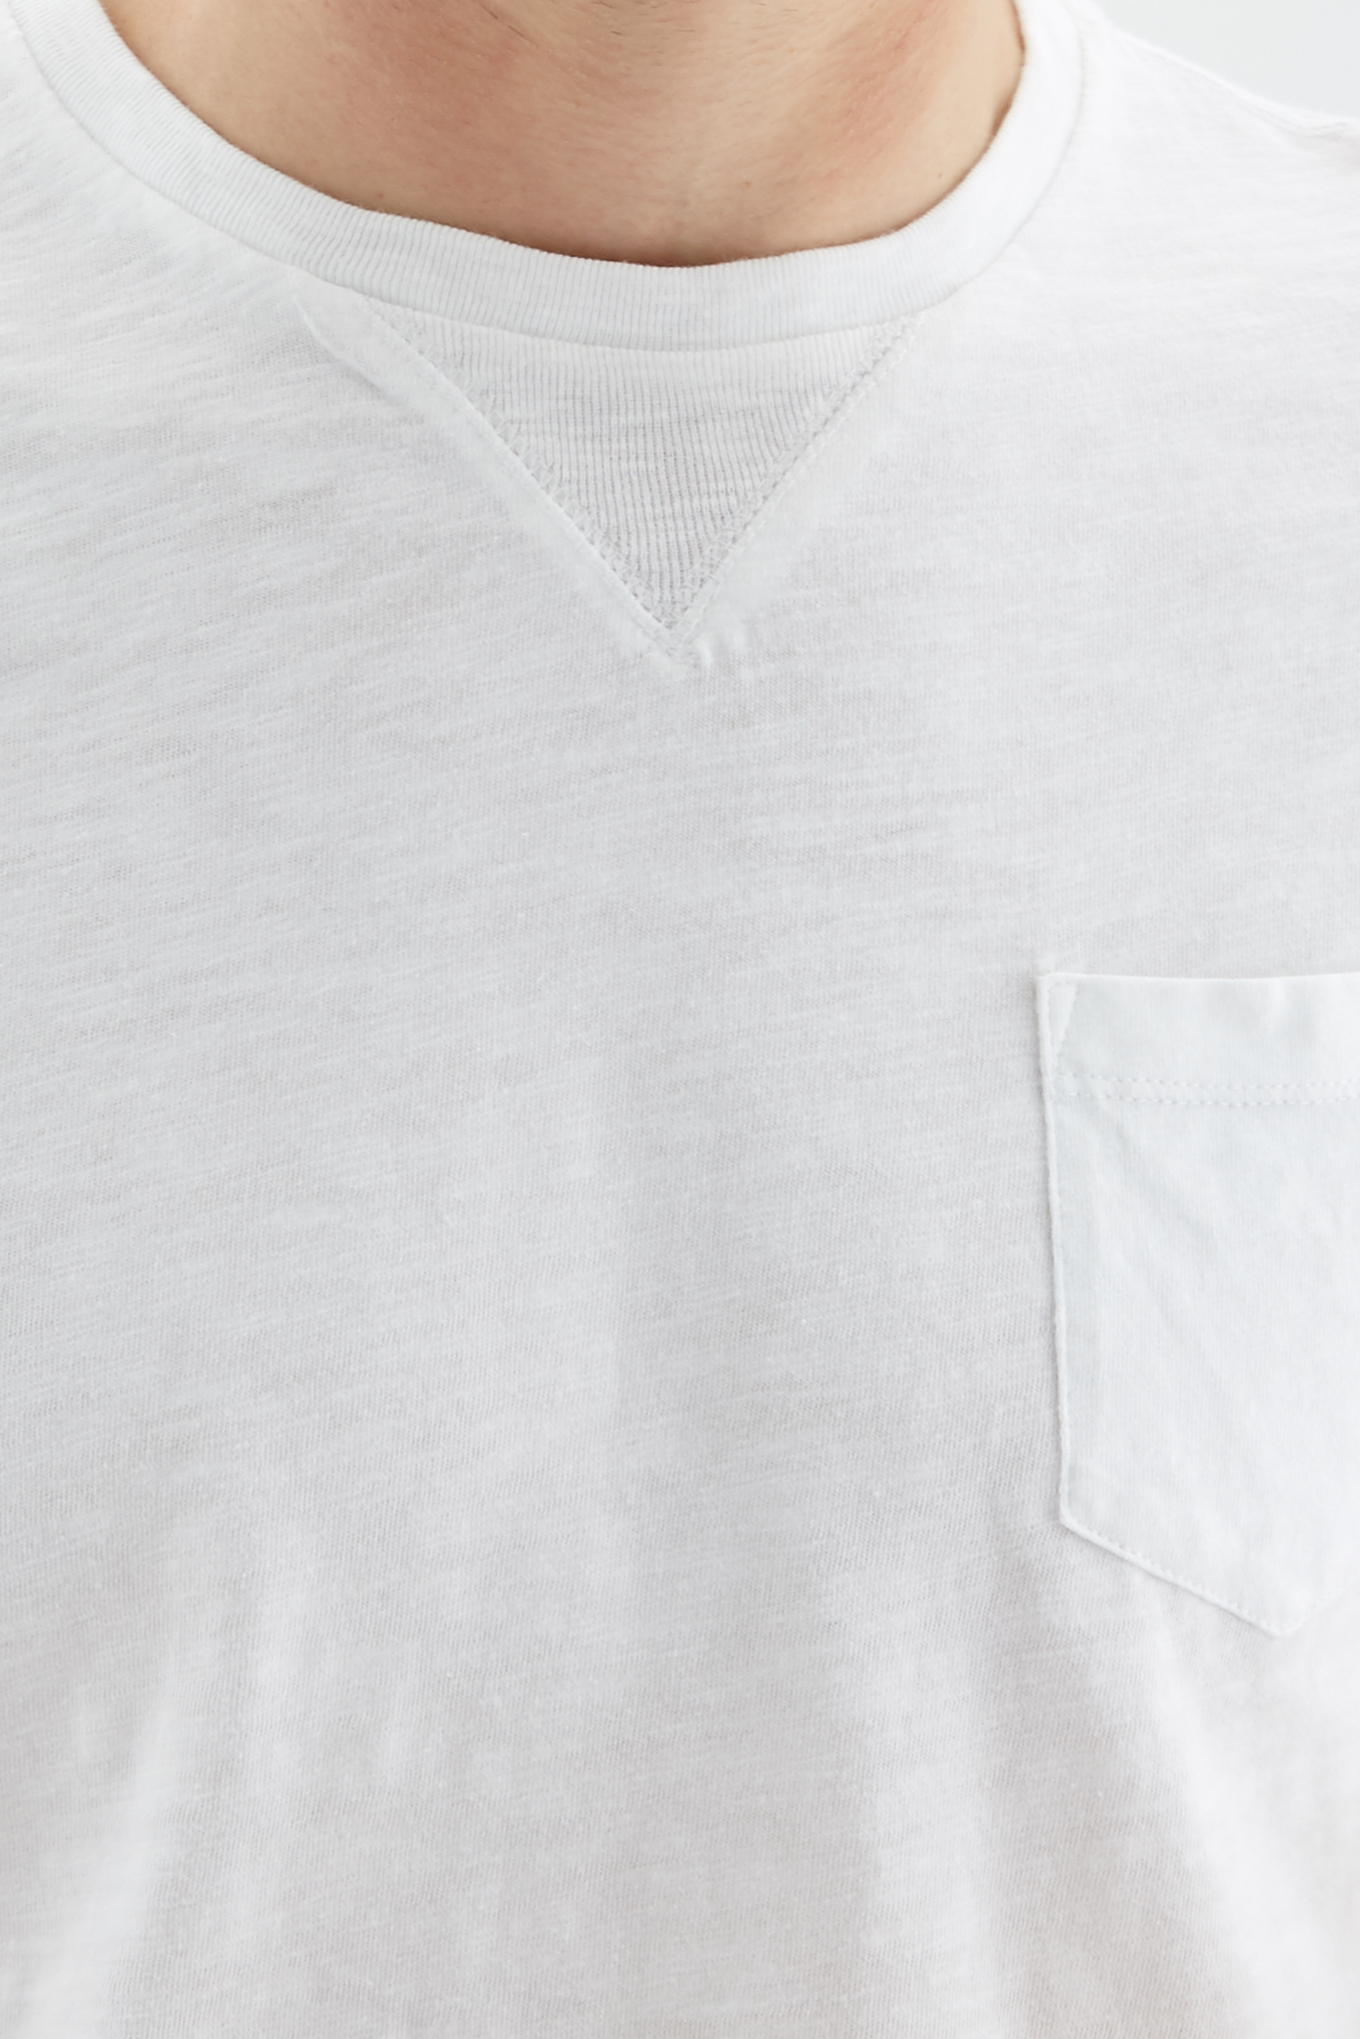 T-Shirt White Sport Man